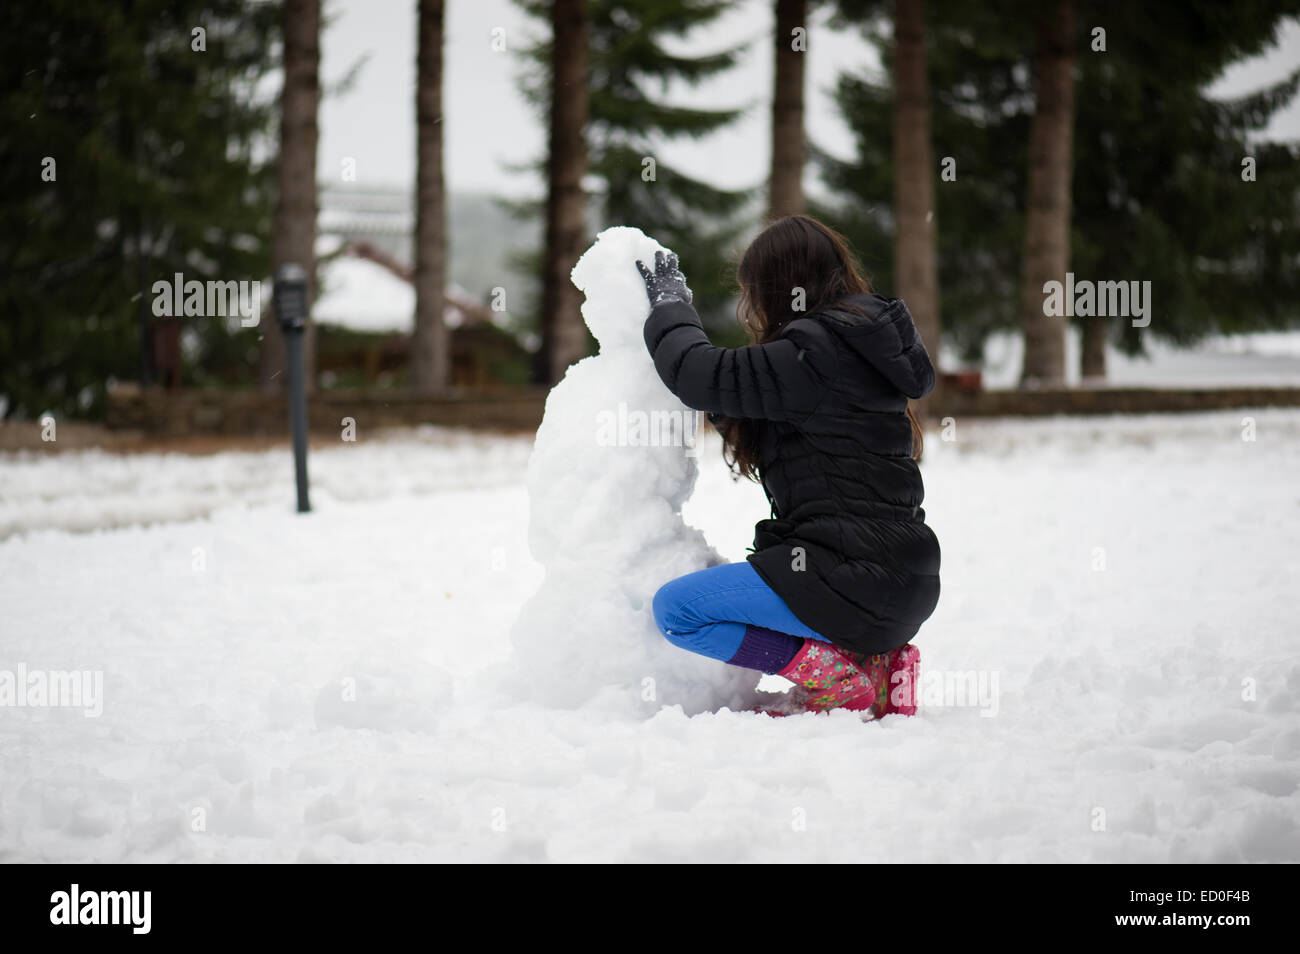 Girl making a snowman - Stock Image